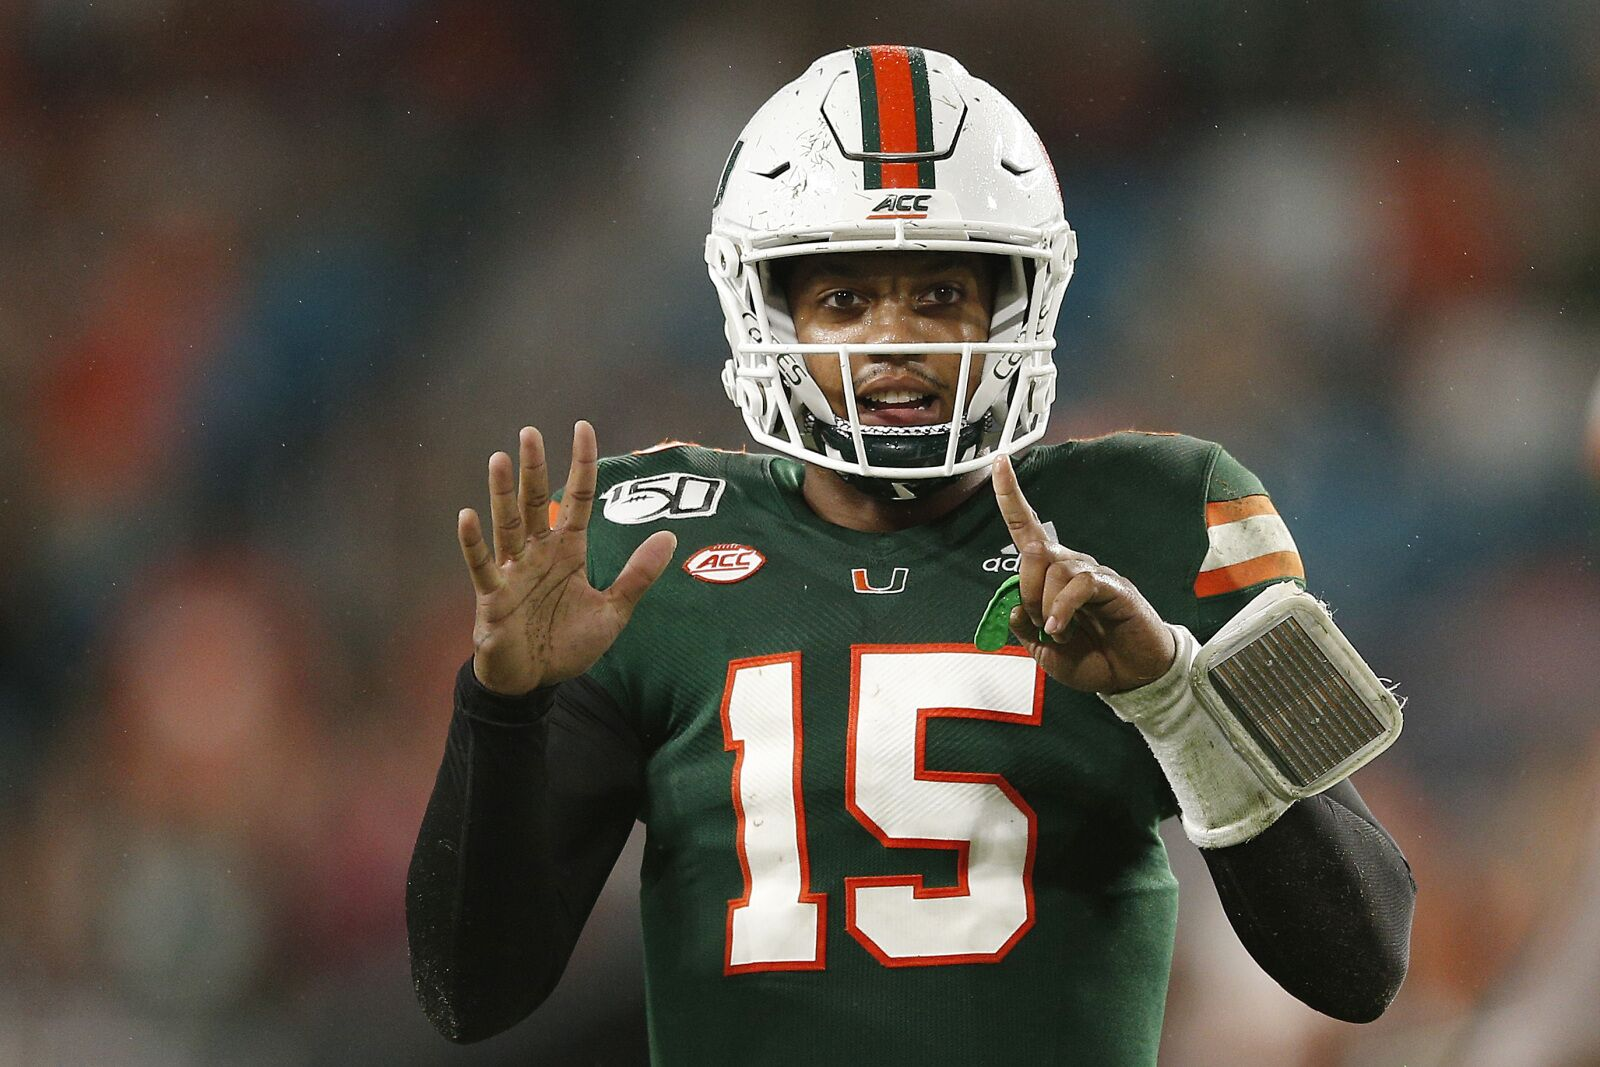 Miami football should not be above inquiring into transfer quarterbacks